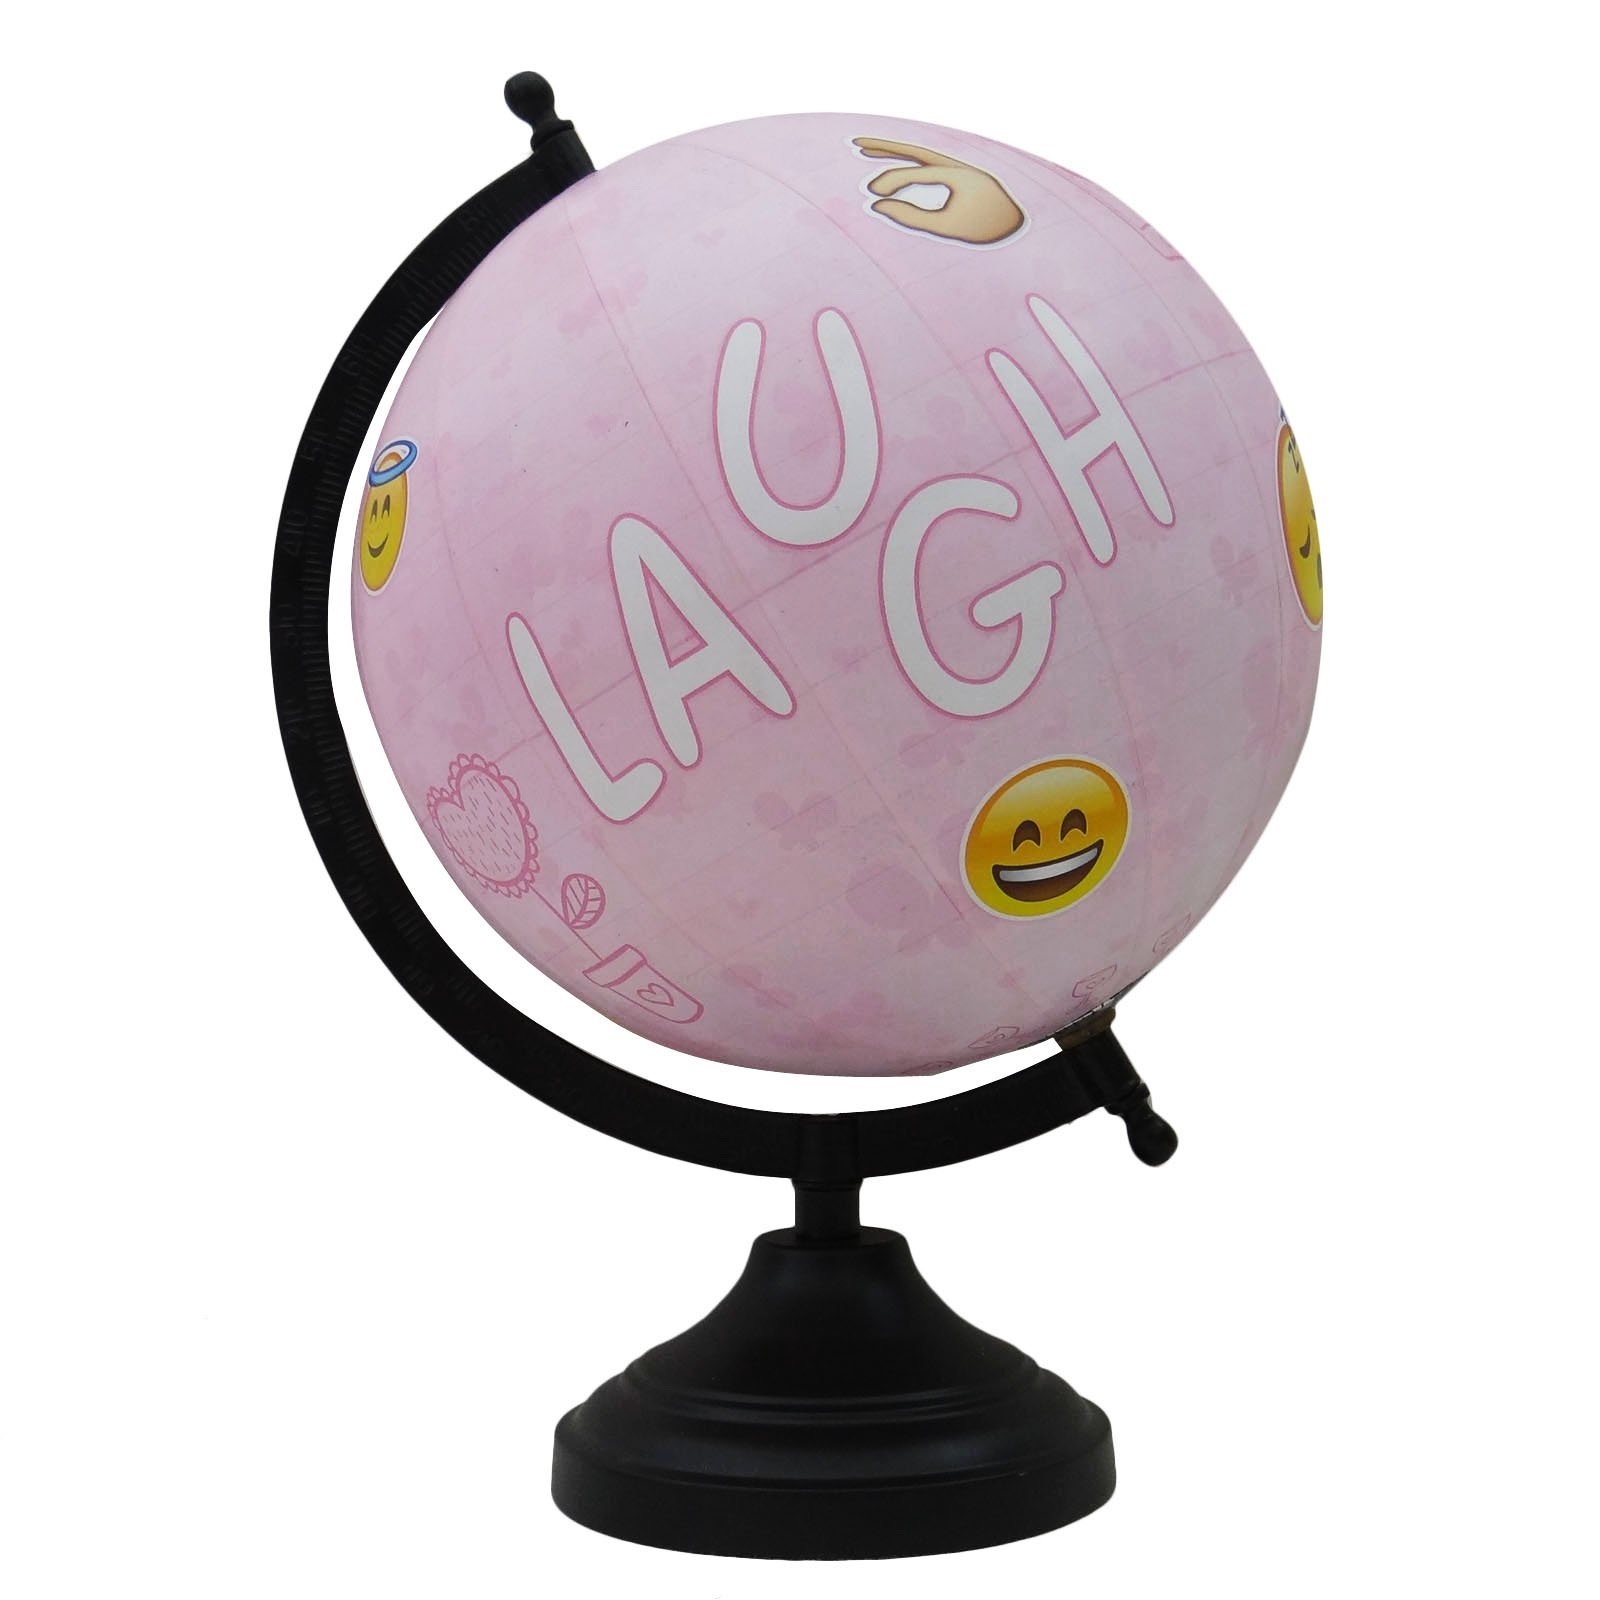 Decorative Emoticon Globe Rotating Desktop Home Office Table Decor Gift